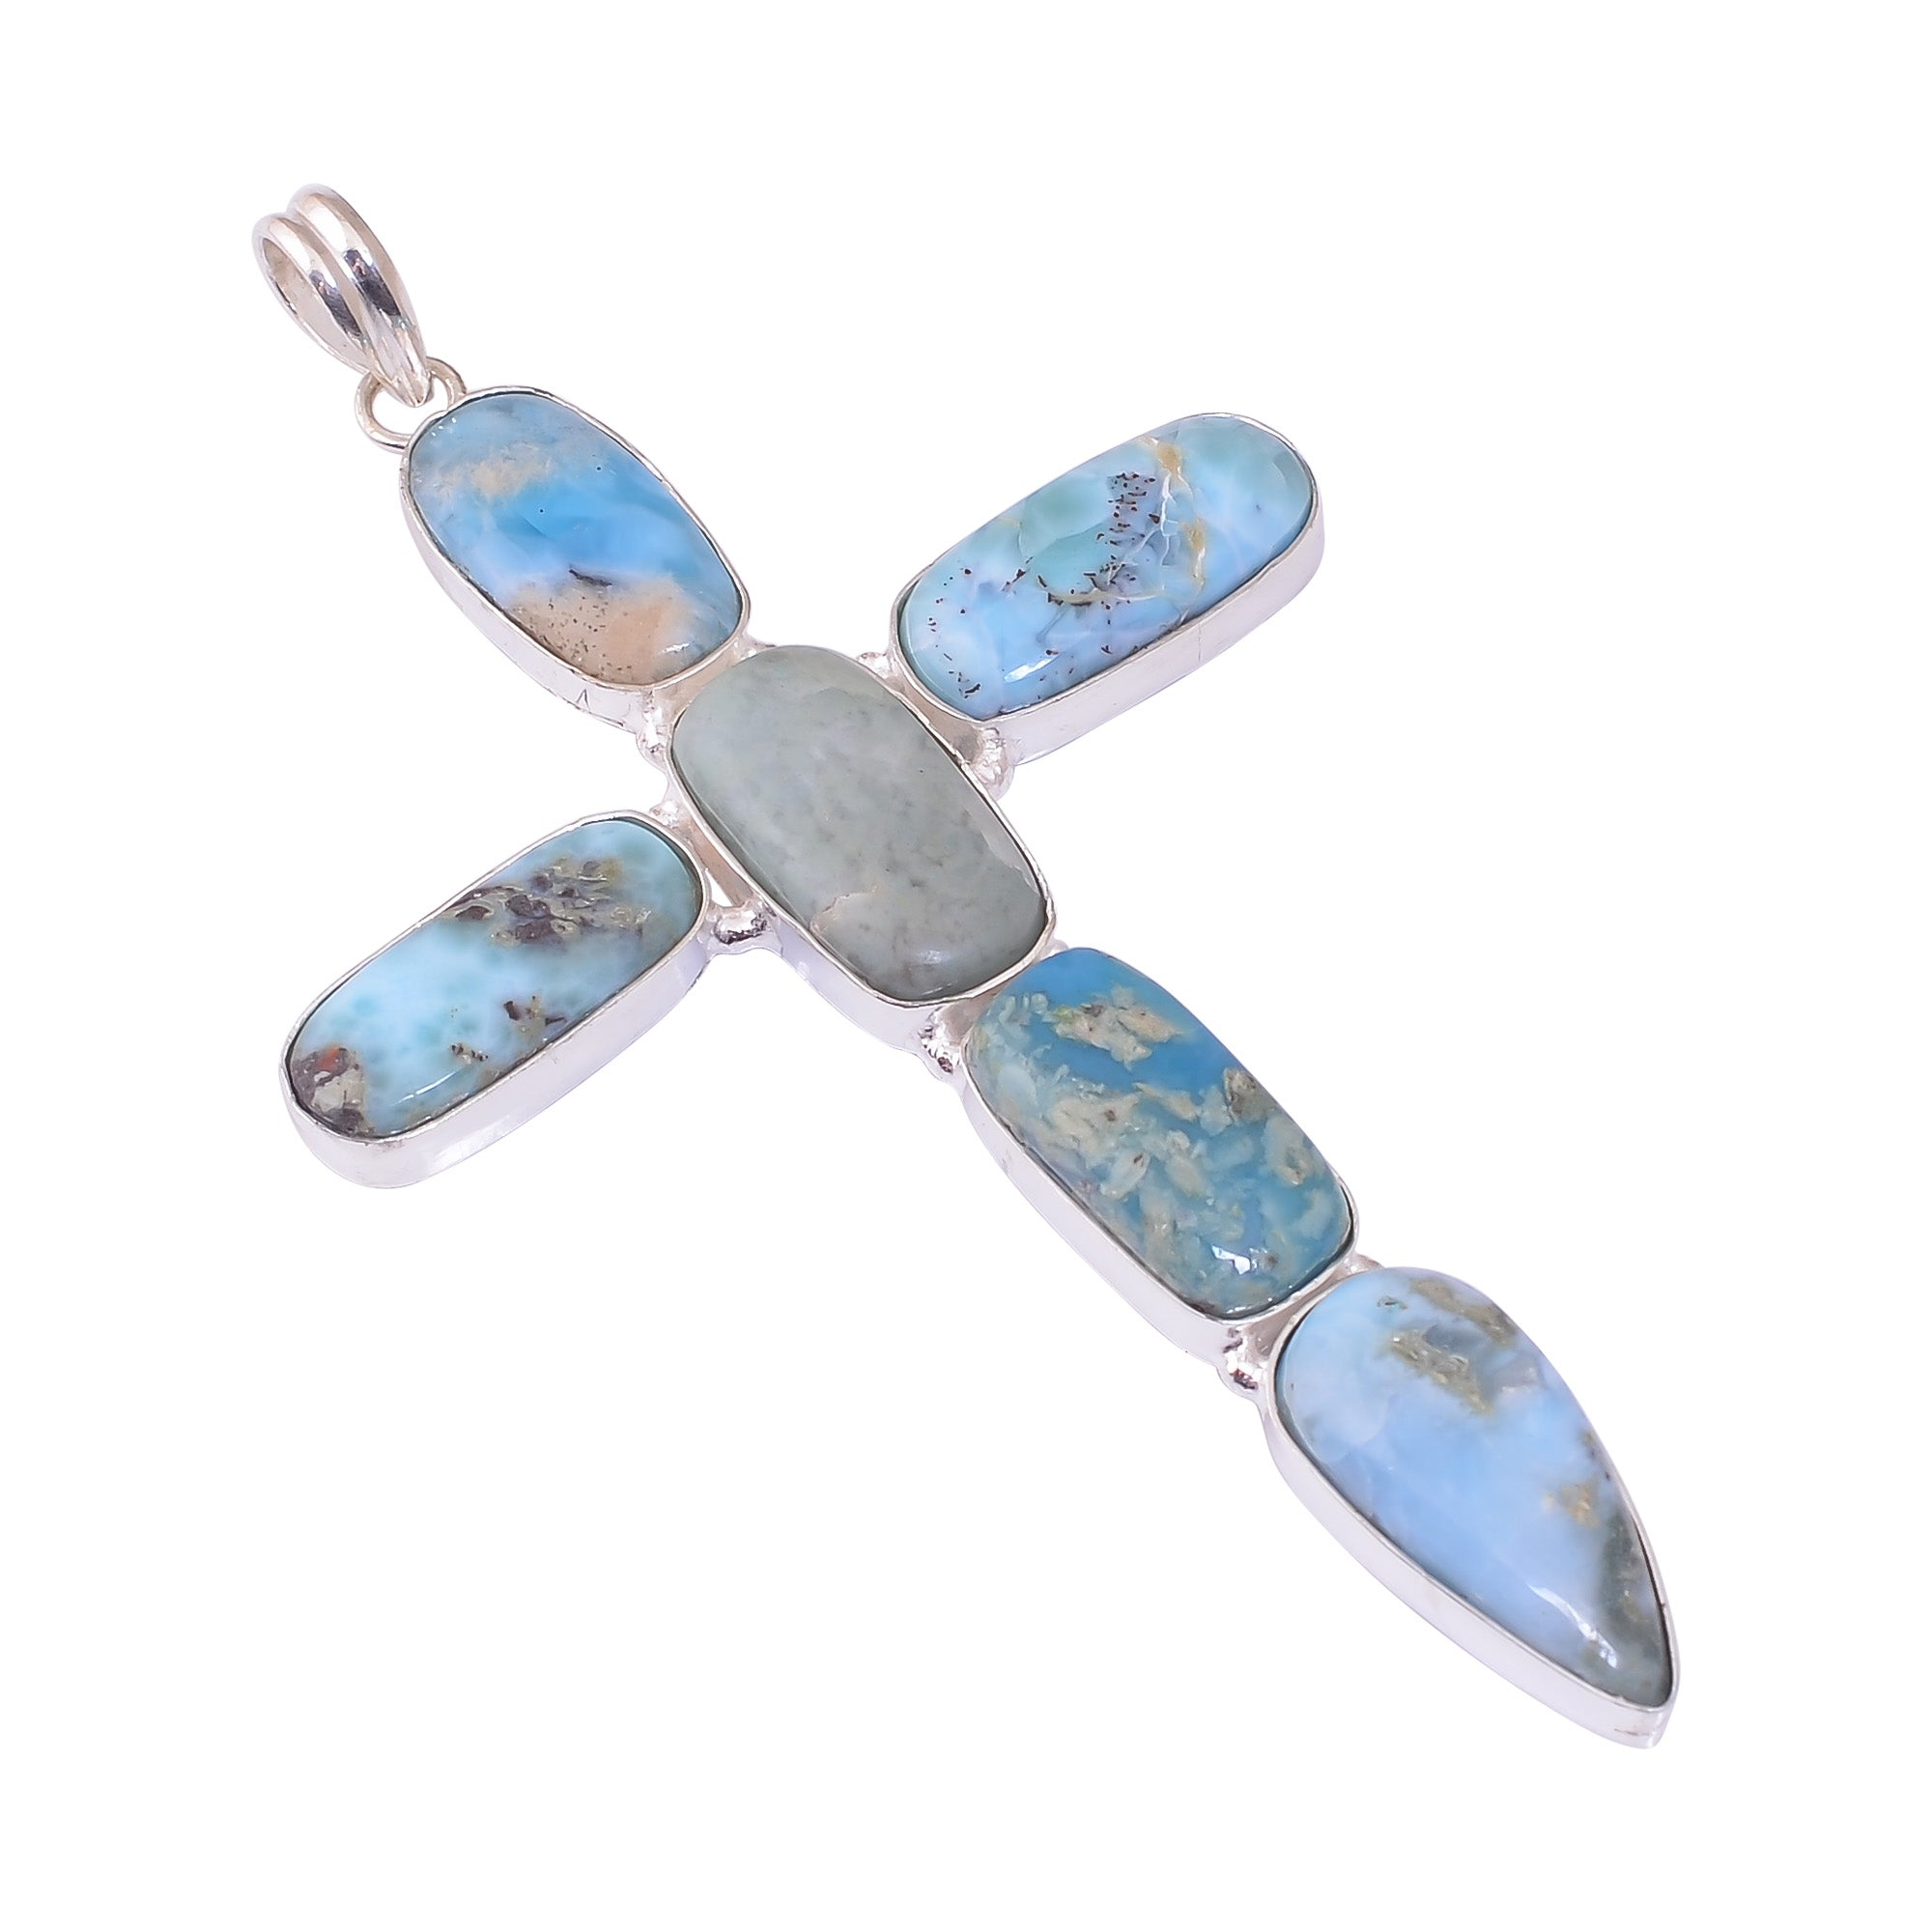 Bullahshah Sterling Silver Overlay Cross Pendant with Larimar Gemstone, Natural Handmade Stone Necklace for Women with Rhodium Plated Chain, NLG-1700